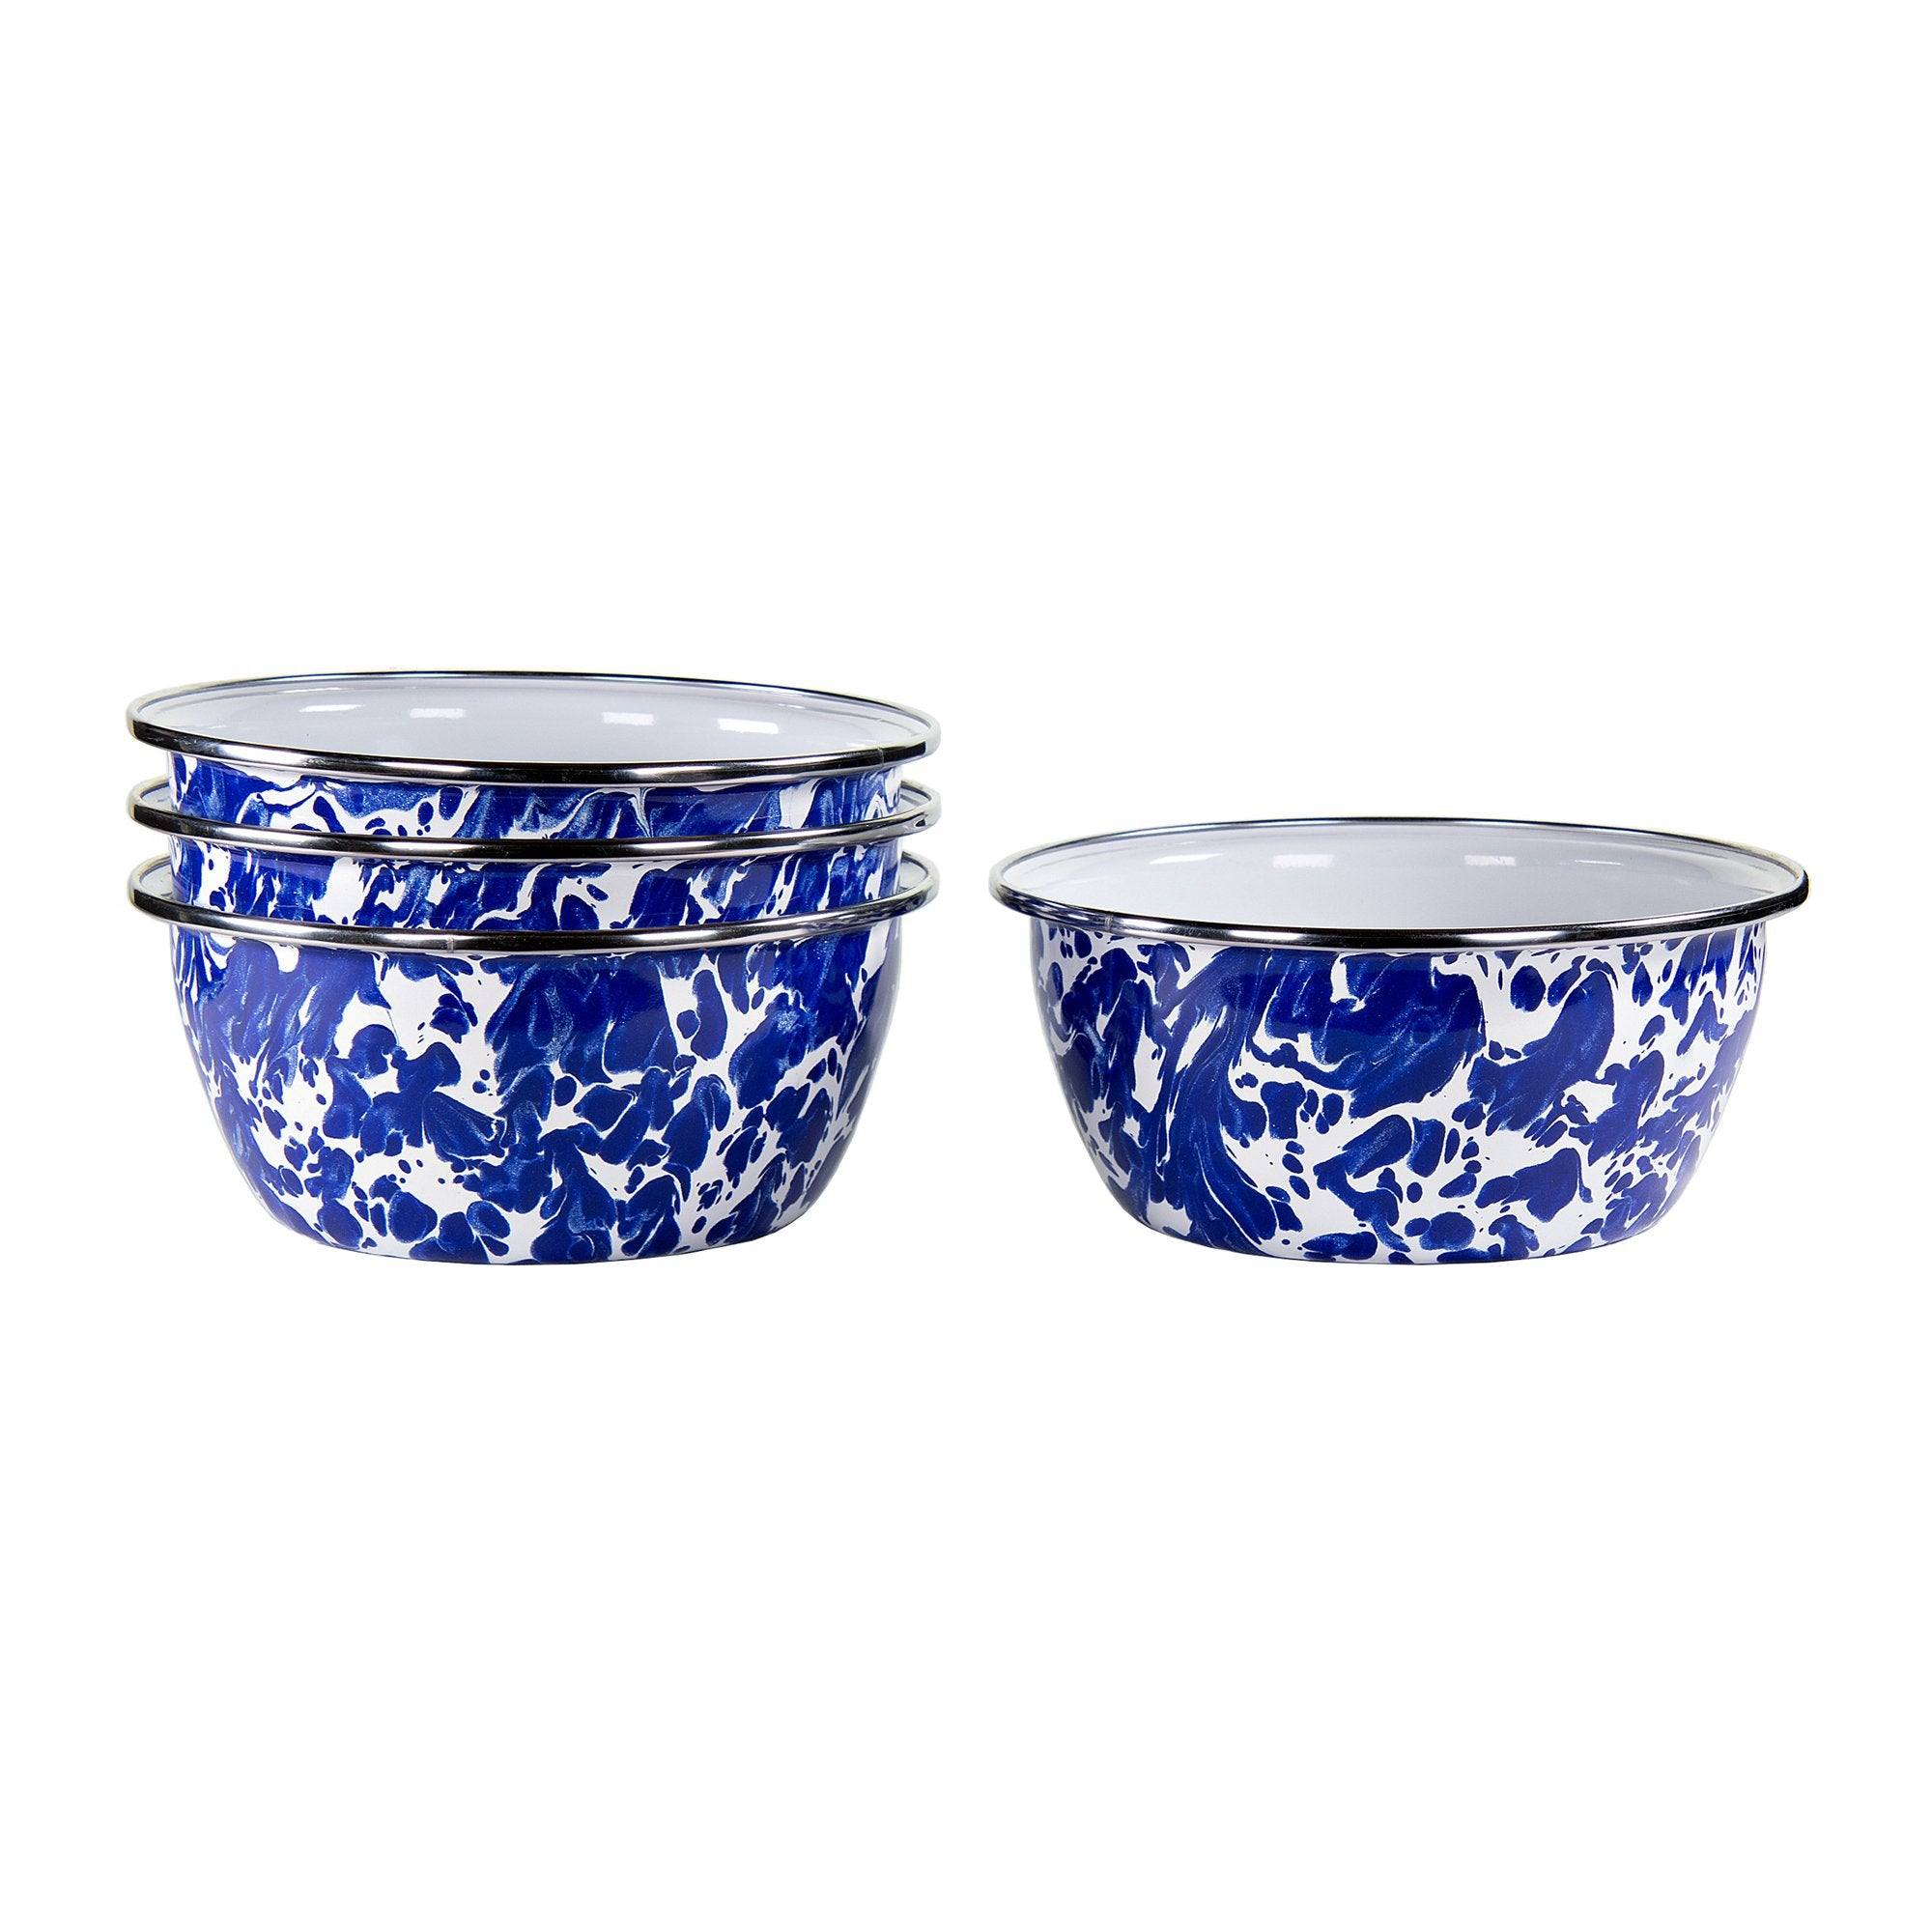 CB61S4 - Set of 4 - Enamelware Cobalt Blue Swirl - Salad Bowls by Golden Rabbit